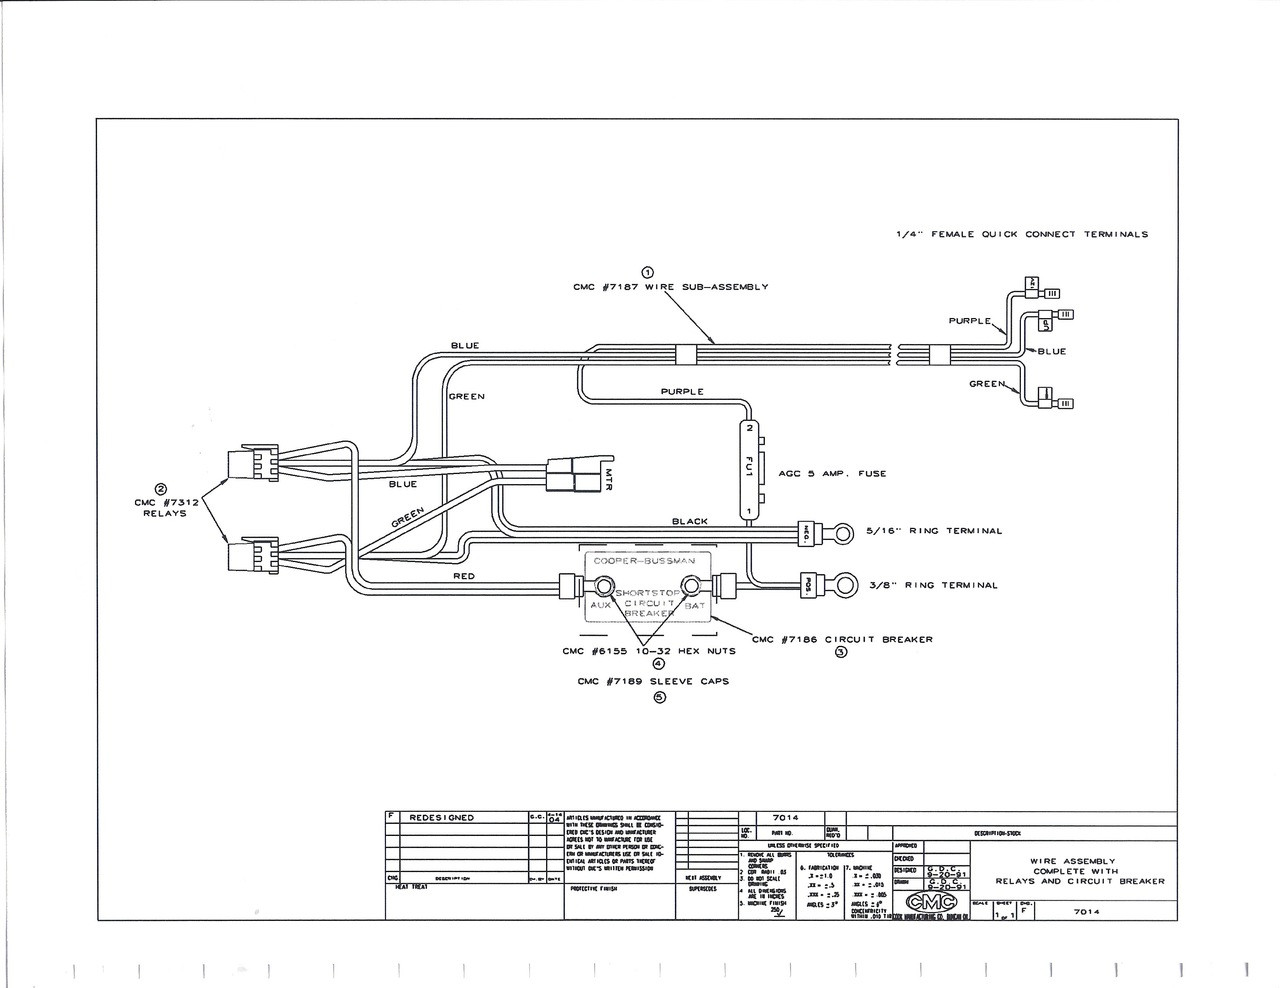 small resolution of wire assembly cmc 7014g cmc tilt and trim wiring harness cmc wiring harness